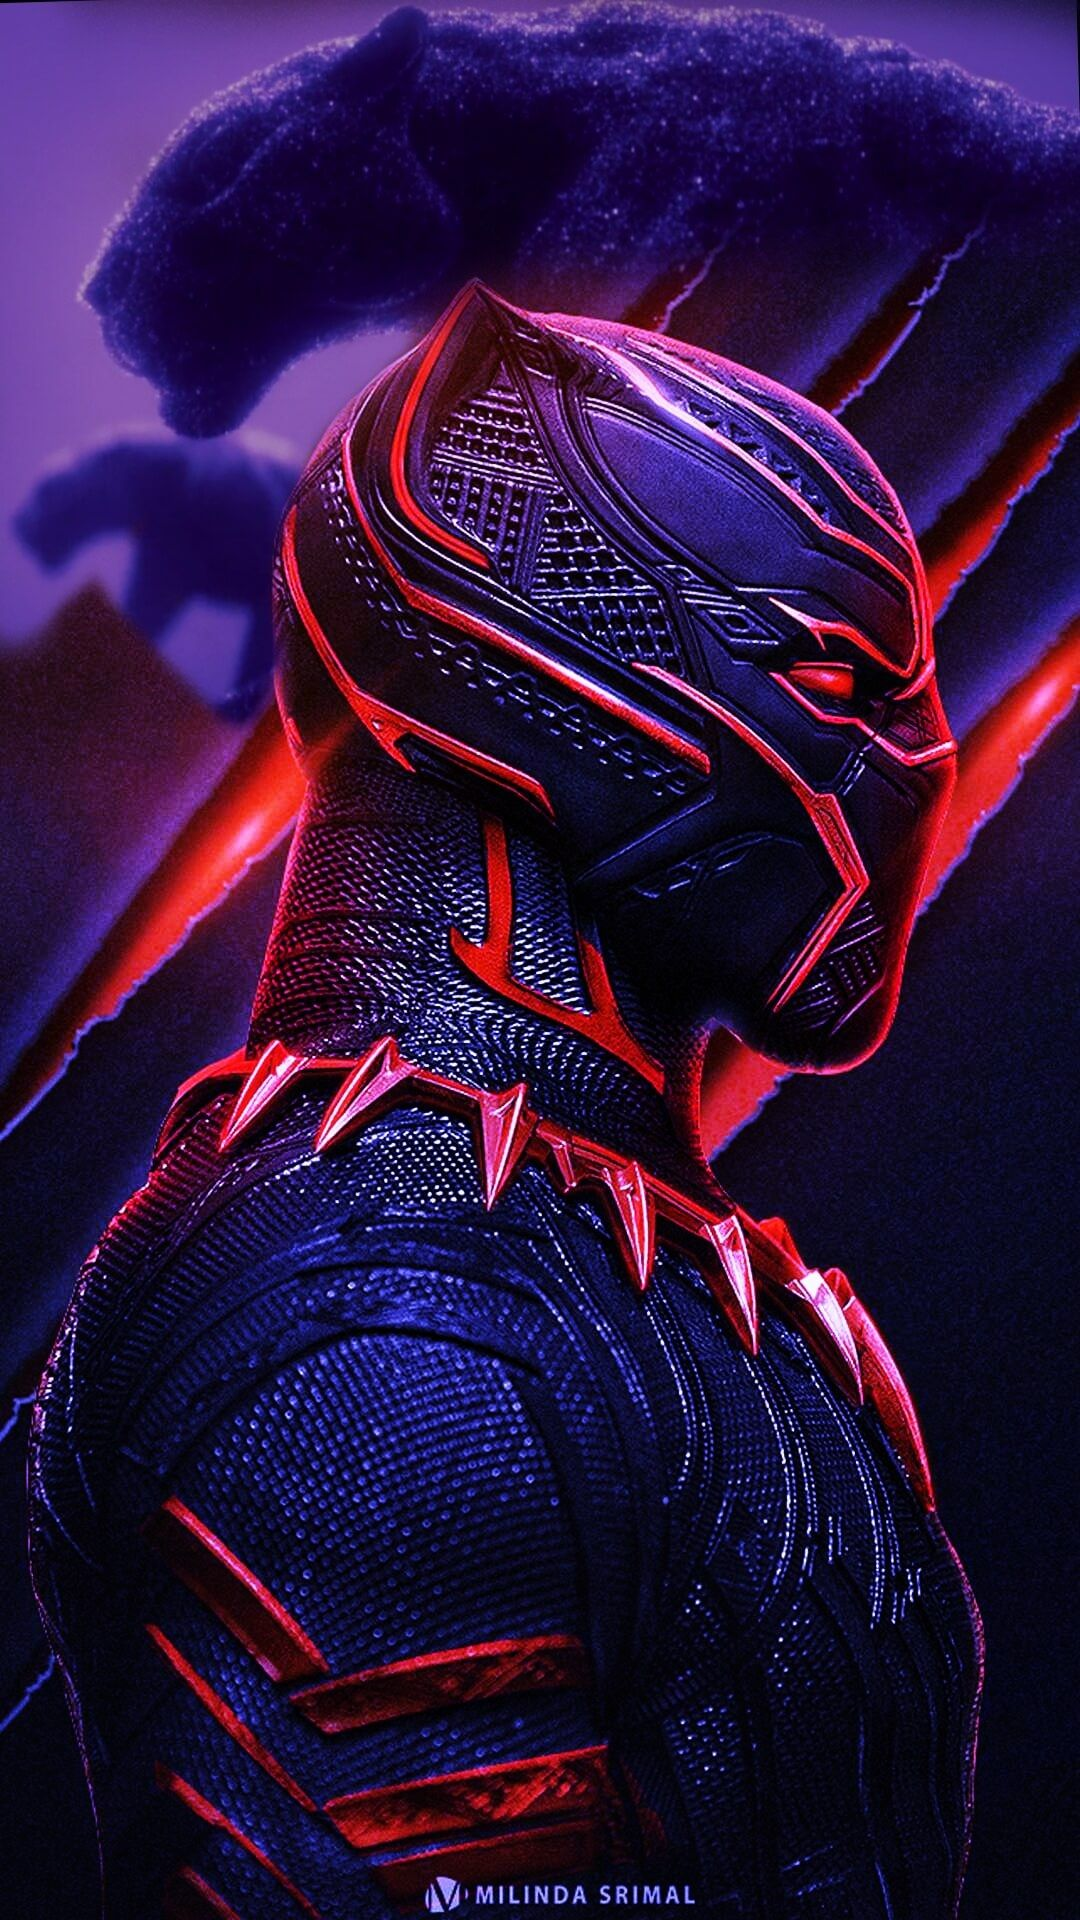 Wallpaper For Iphone 11 Pro Black Panther Marvel Black Panther Art Marvel Comics Wallpaper